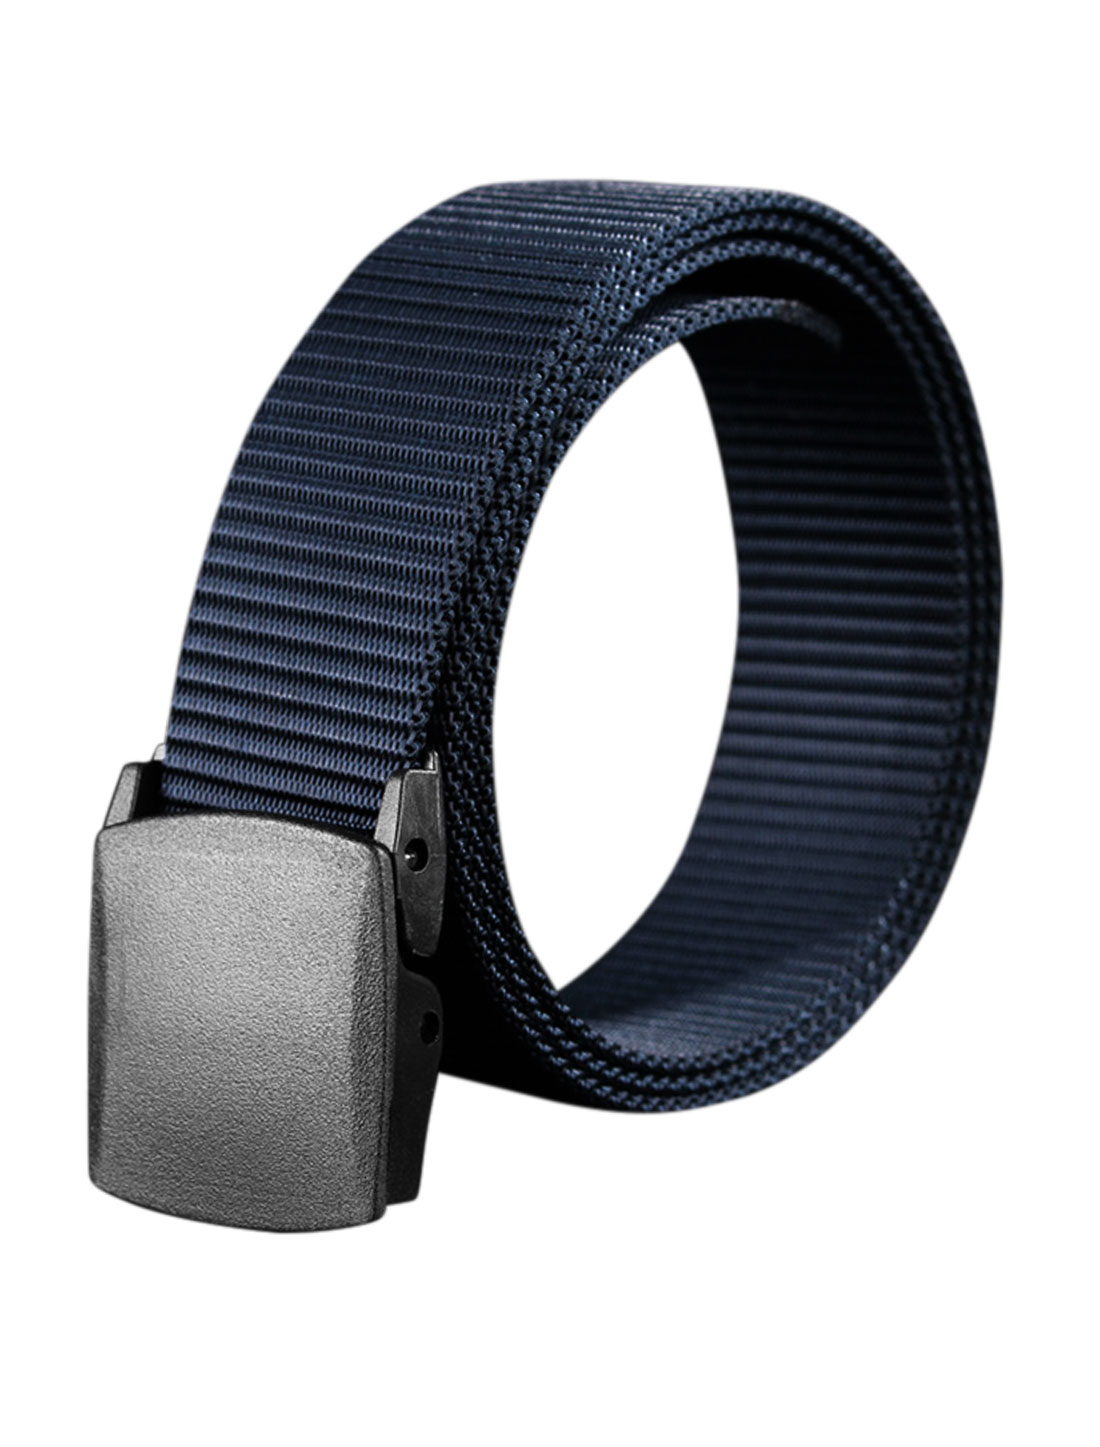 Unisex Plastic Buckle Adjustable Military Canvas Belt Blue